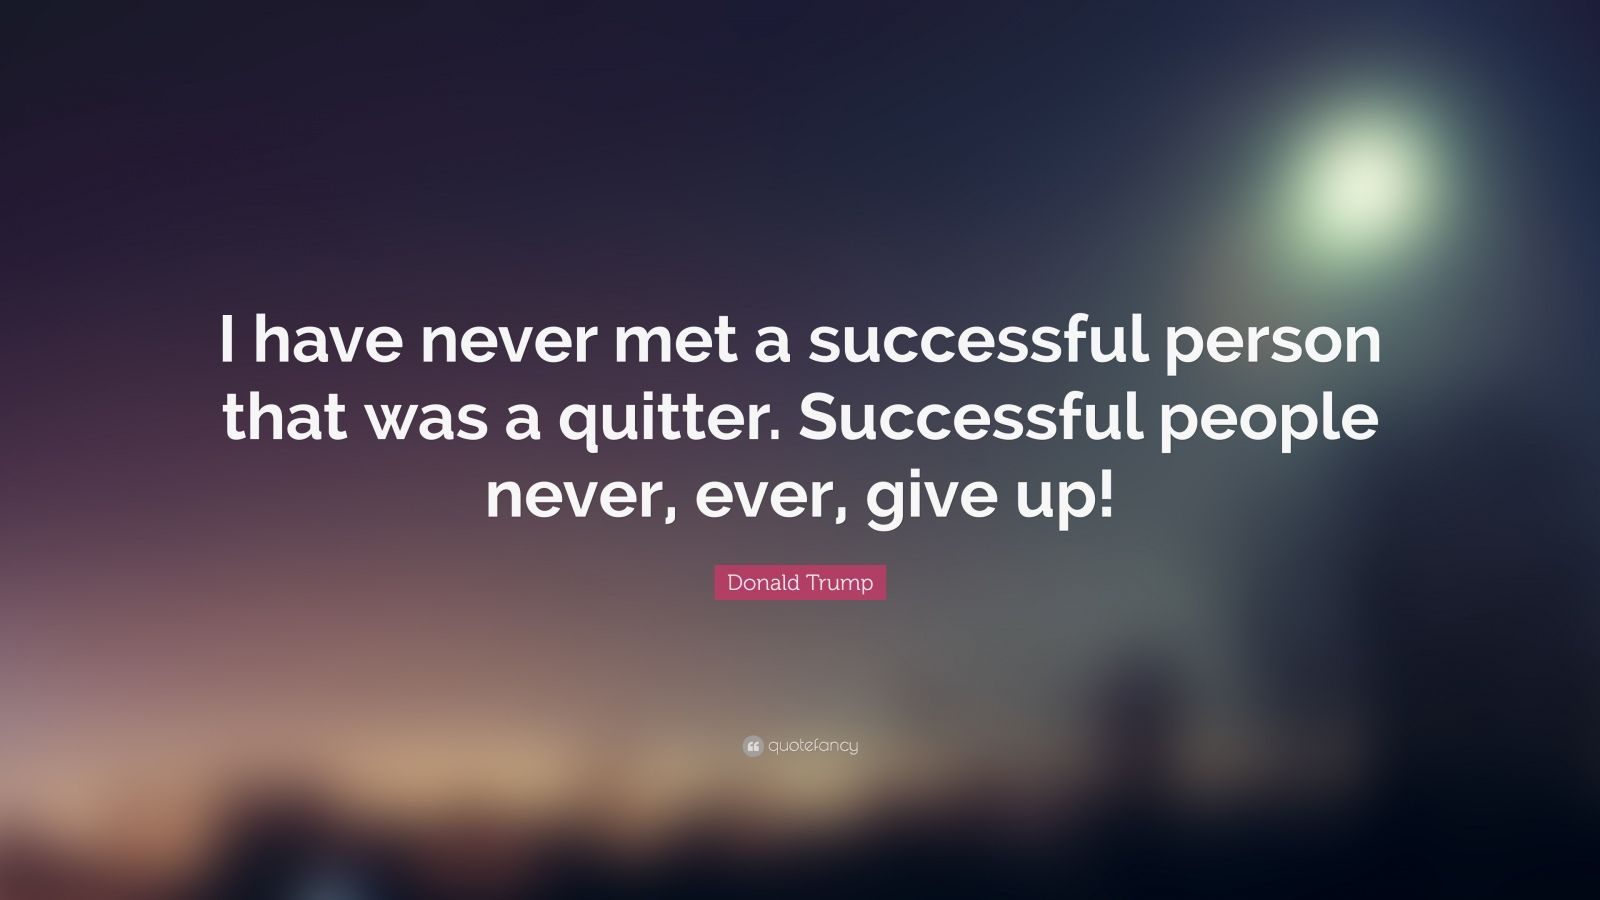 """Donald Trump Quote: """"I have never met a successful person that was a quitter. Successful people never, ever, give up!"""""""